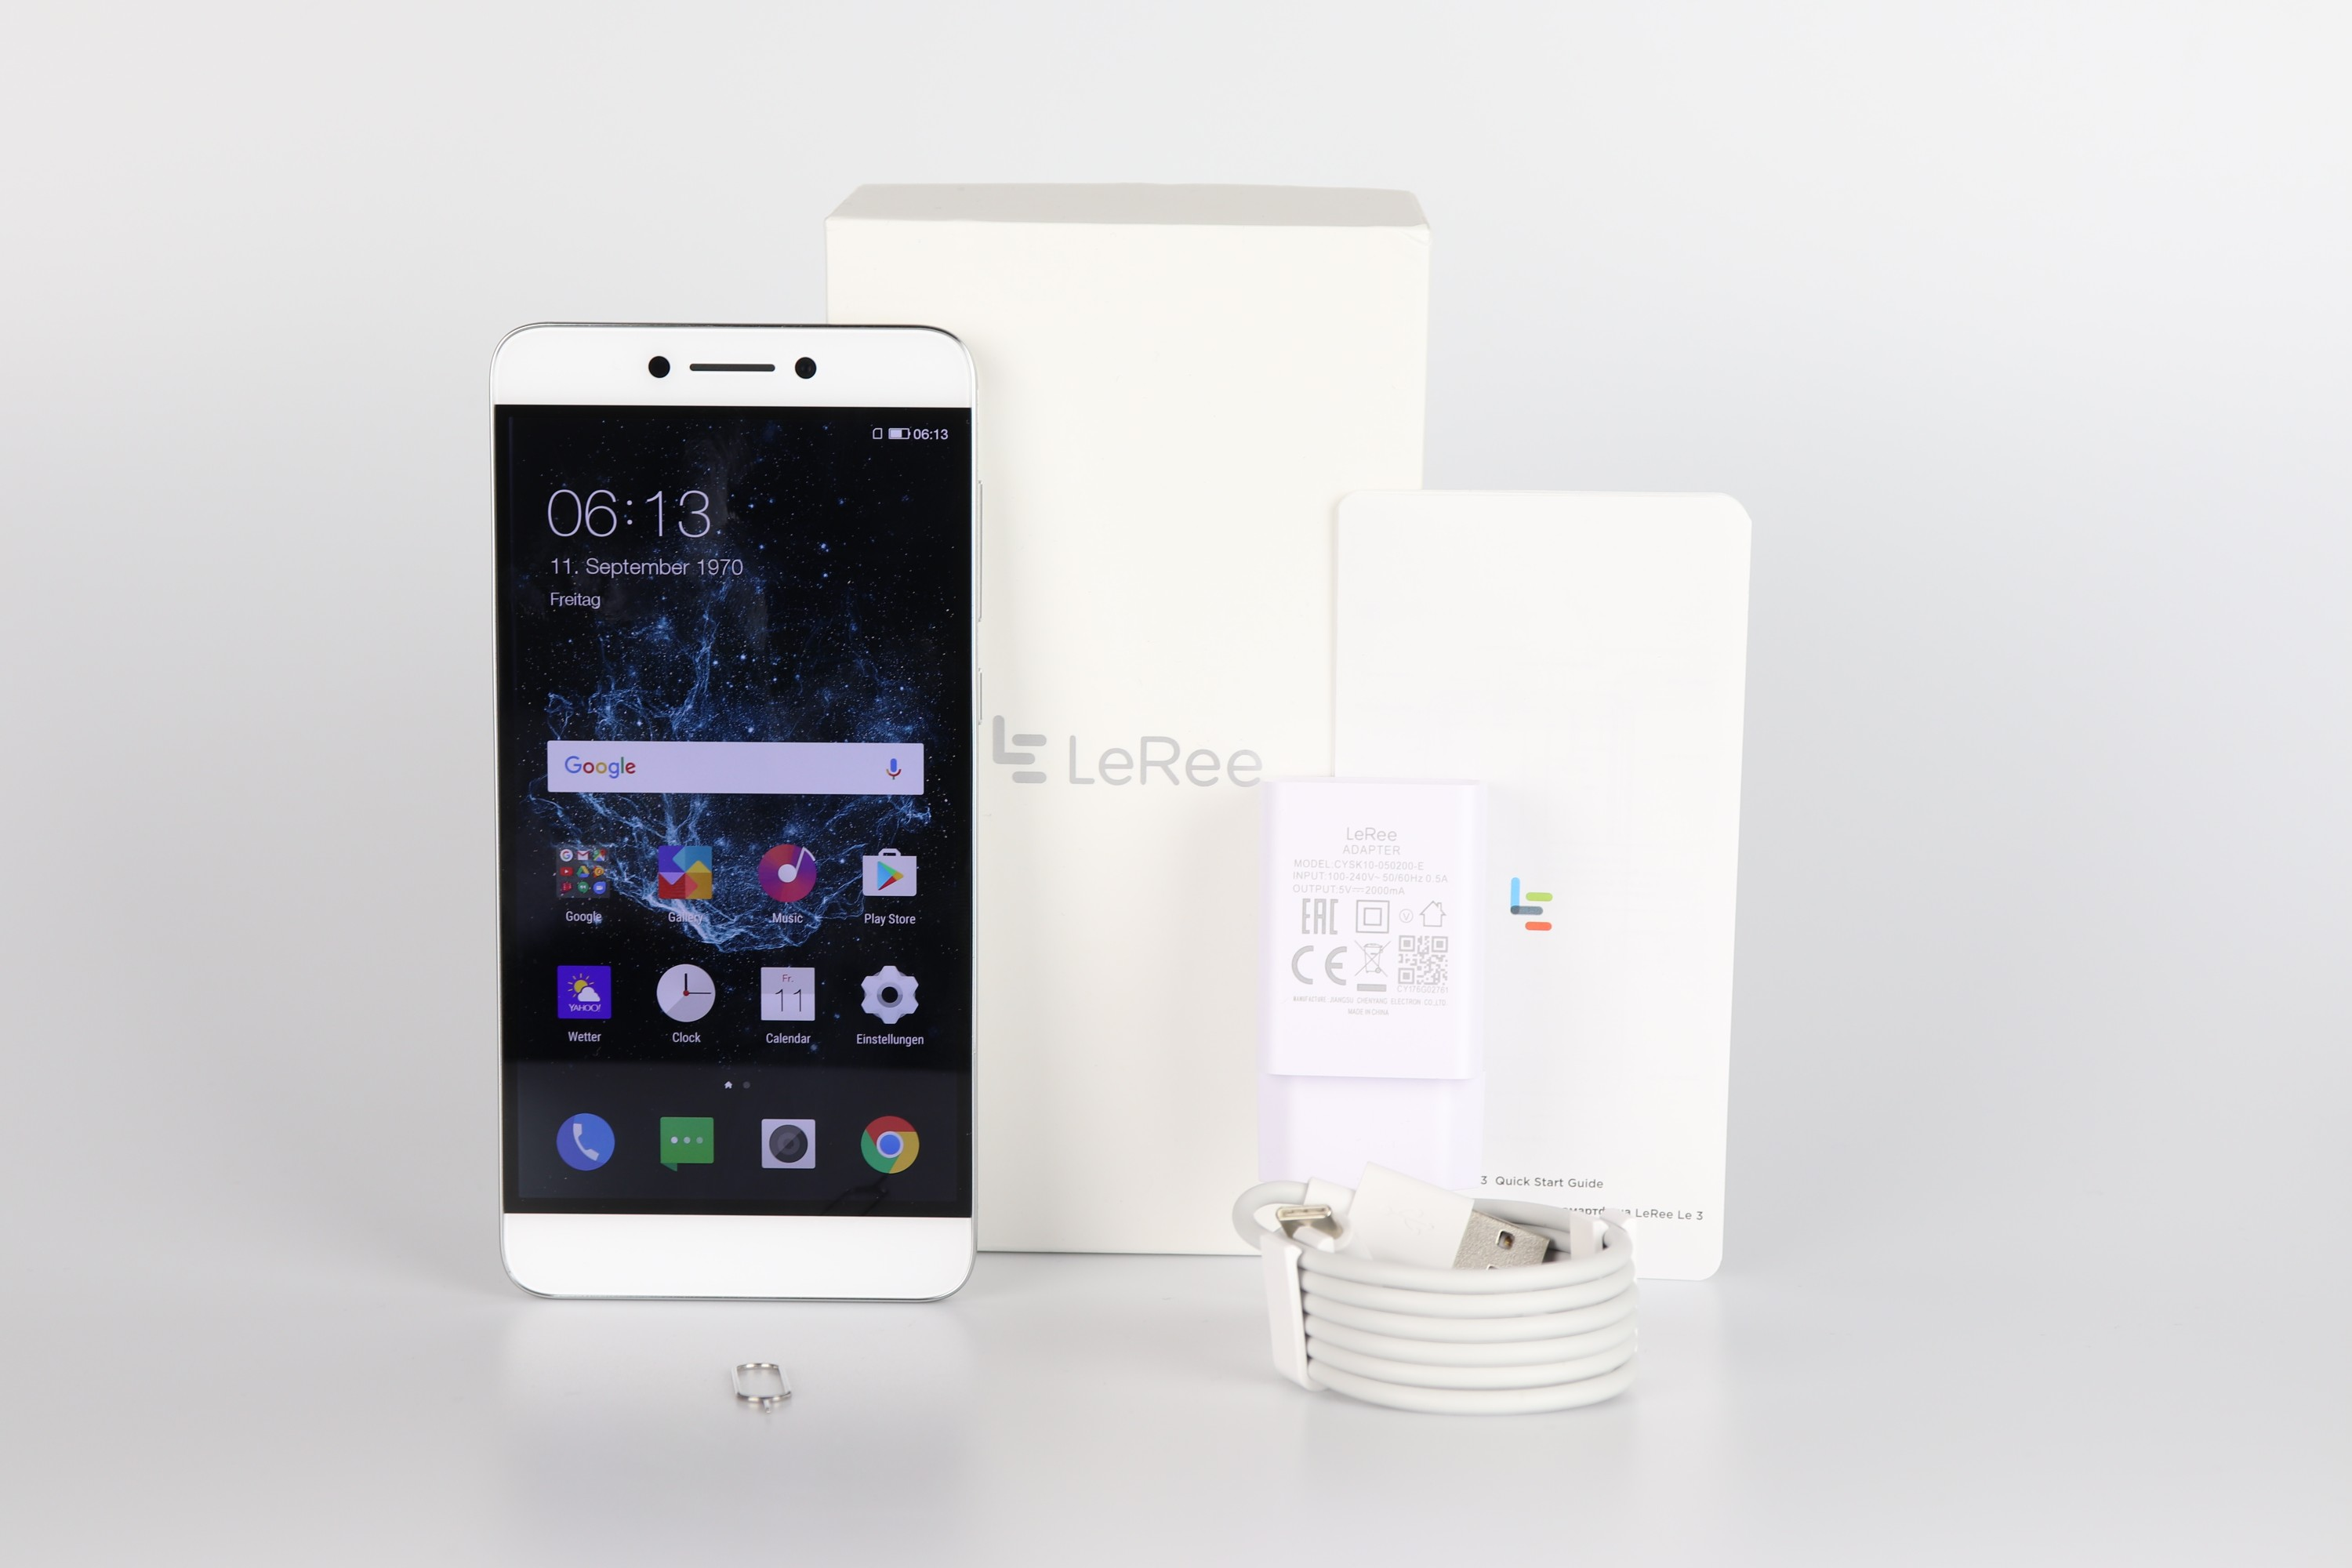 LeEco Le Ree review 1